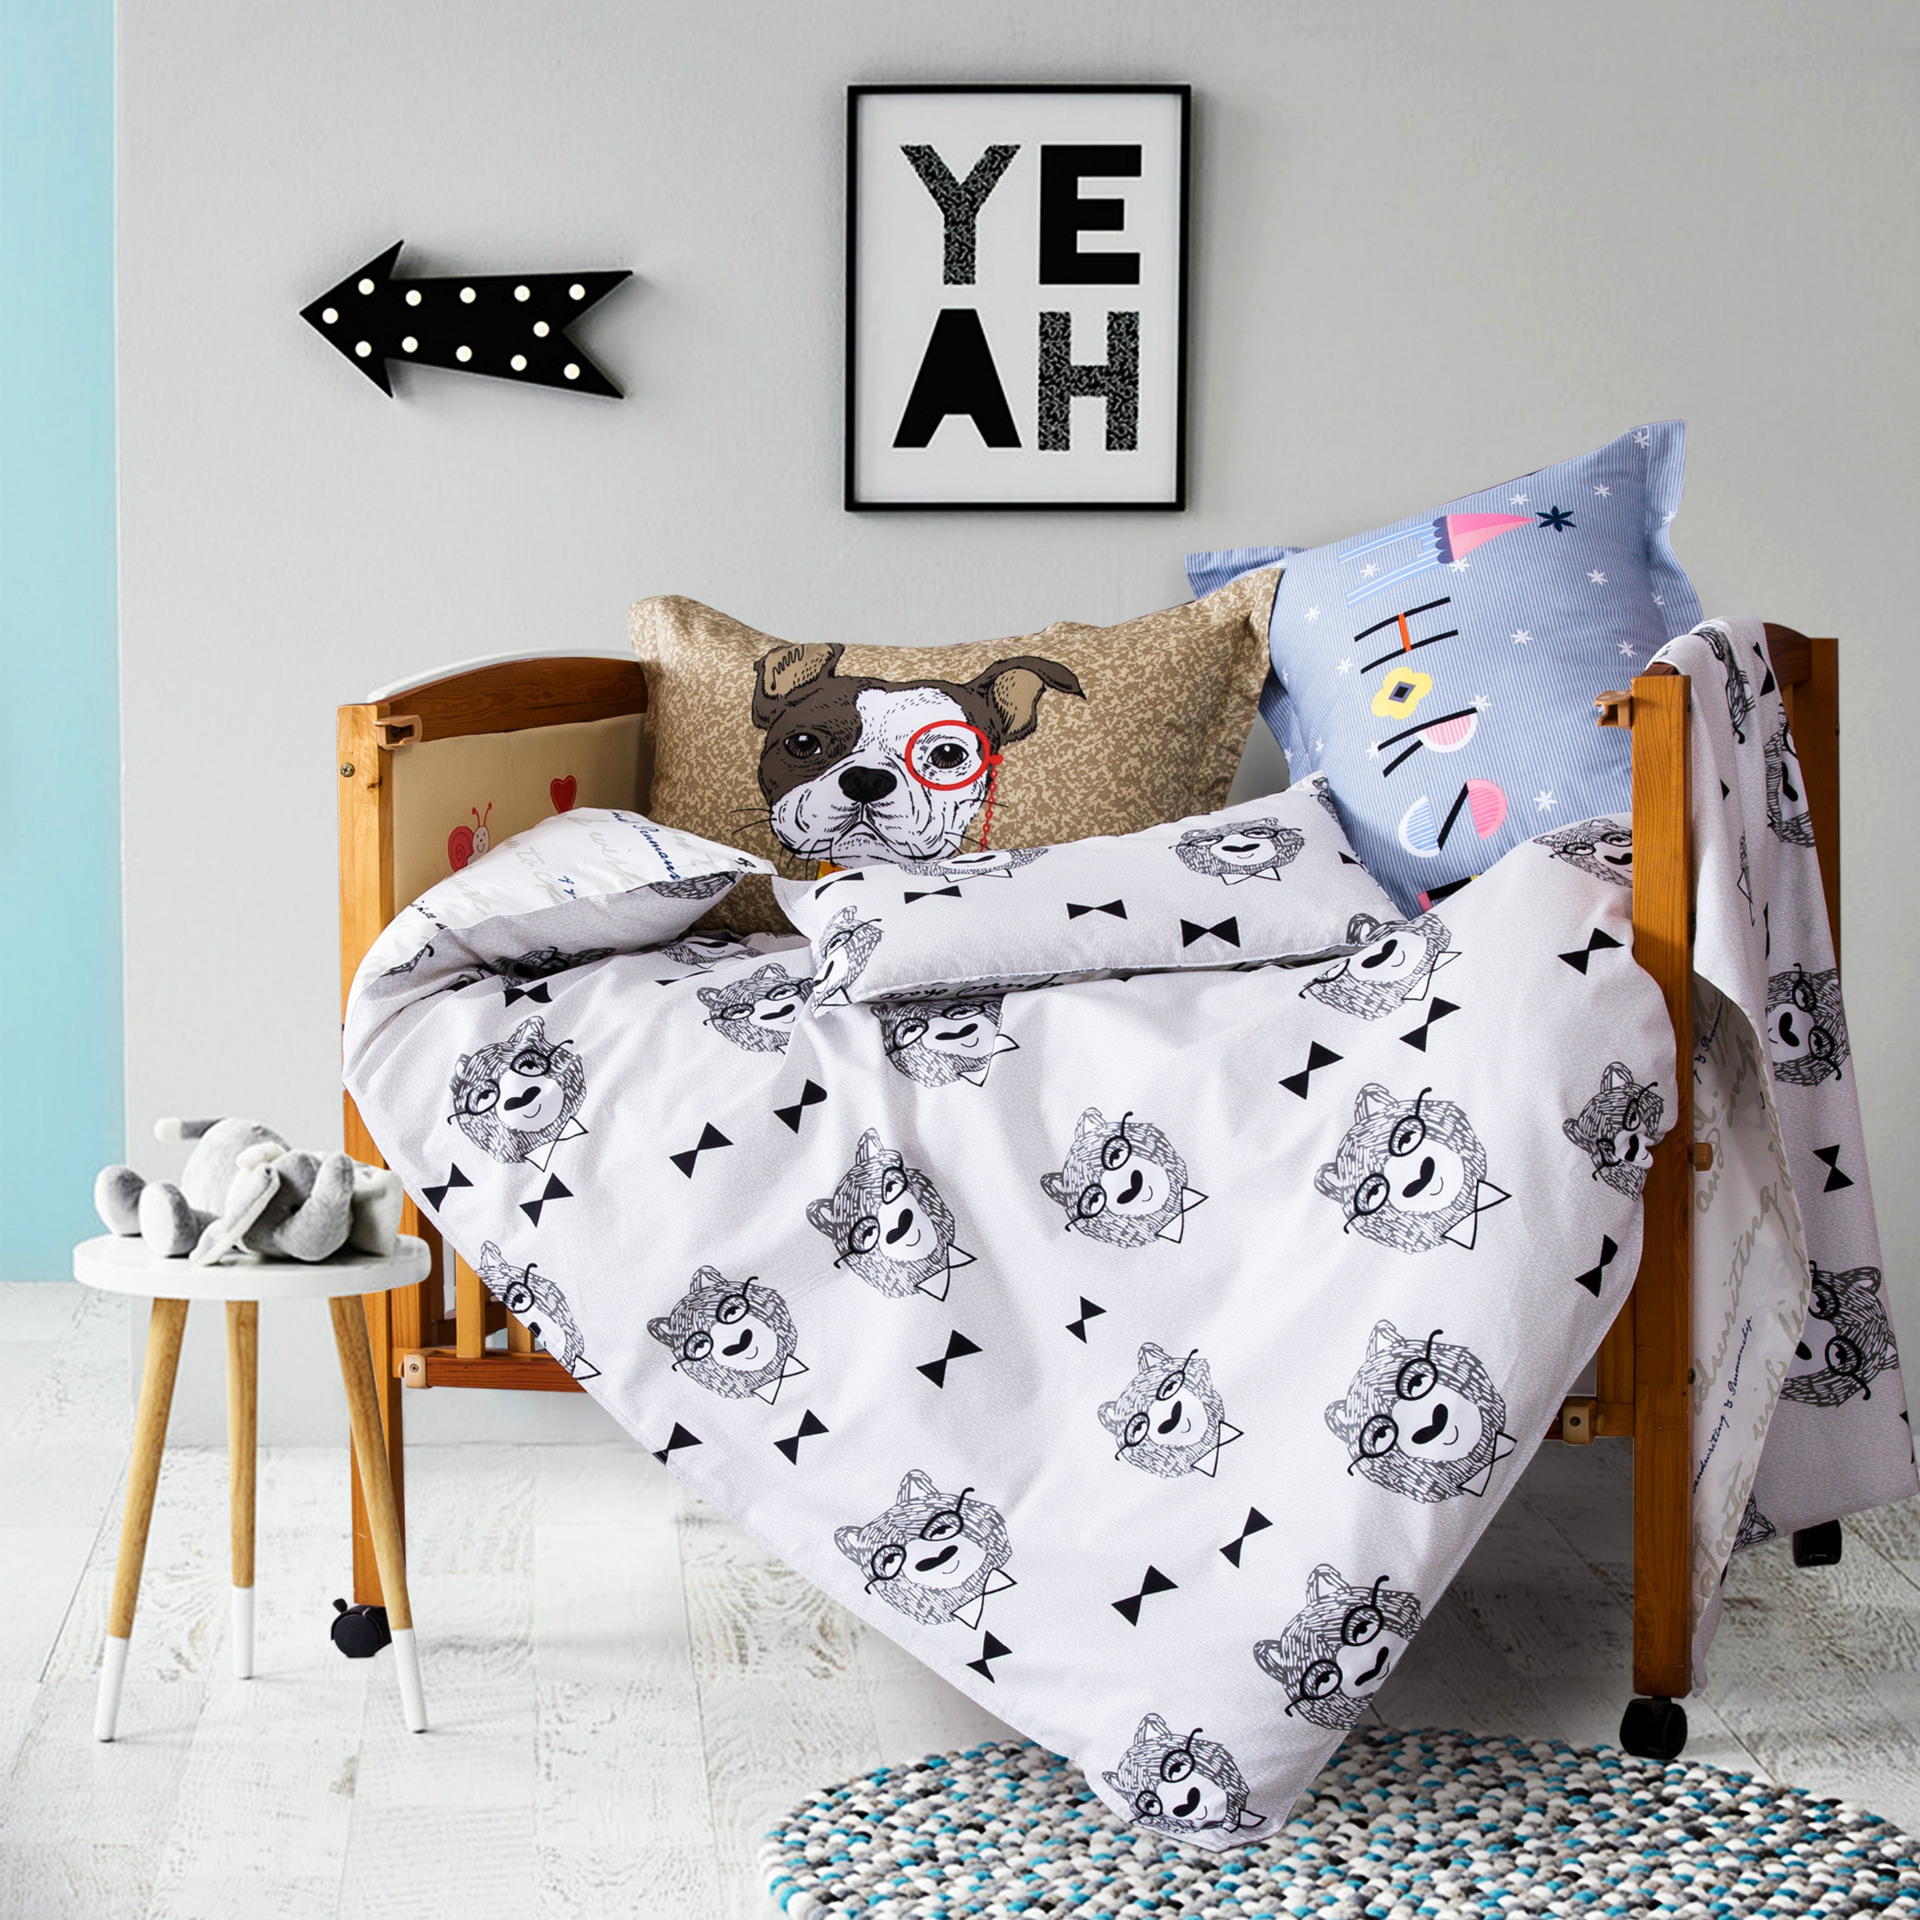 Baby quilts bed covers - 3pcs Set For Baby Bed Crib Bedding Set Baby Bedding Cartoon Design For Girls Boys Bedding Duvet Quilt Cover Pillowcase Sheet